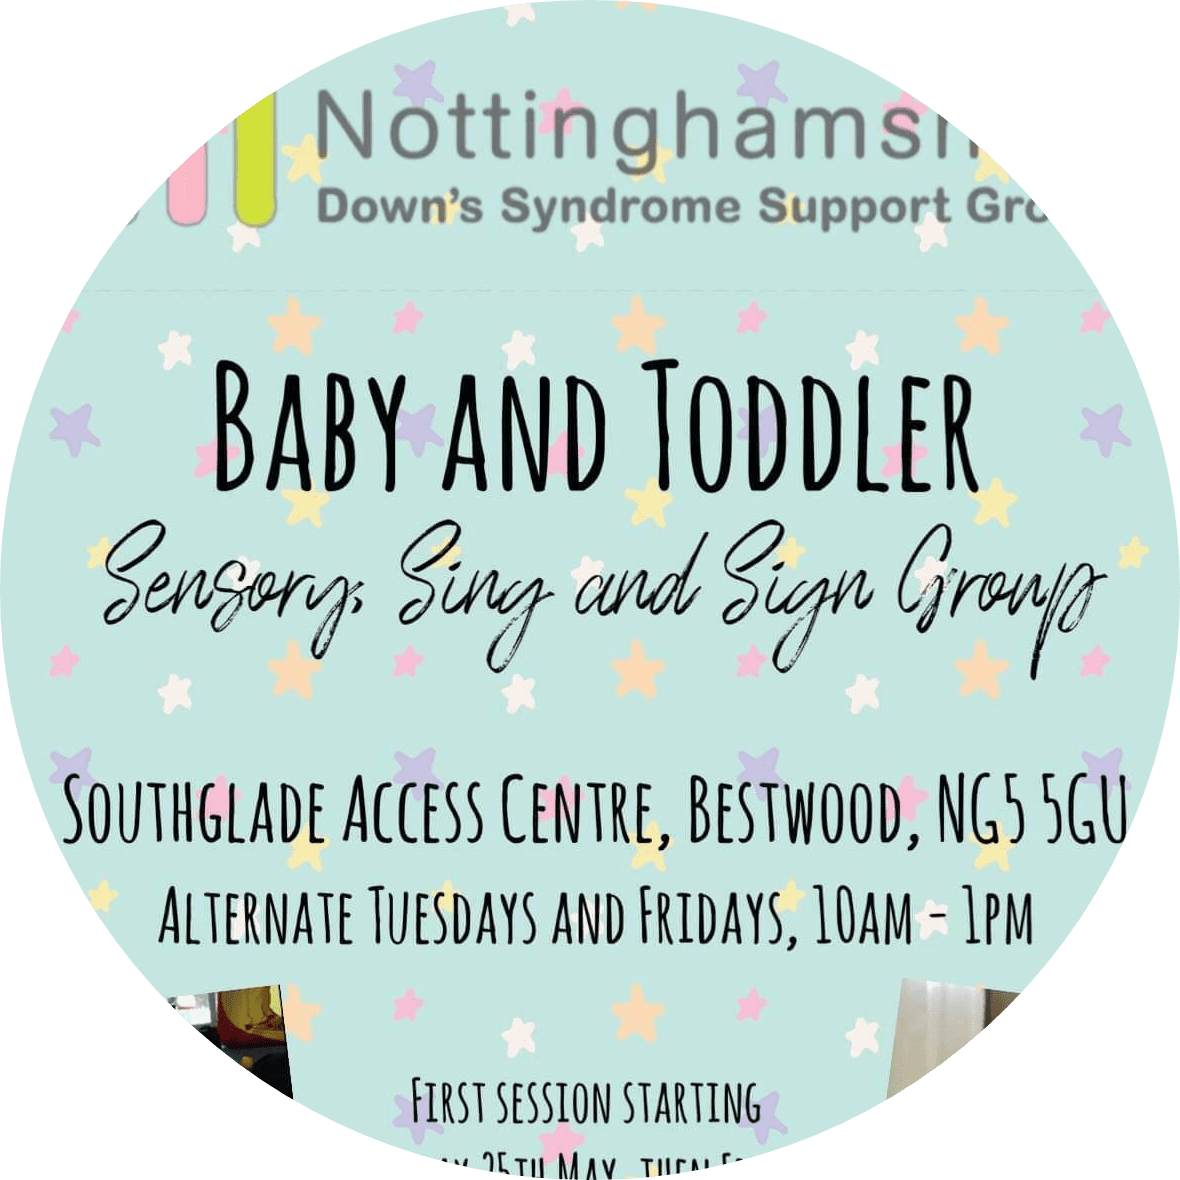 Nottinghamshire Downs Syndrome Support Group Baby and Toddler Group Flyer